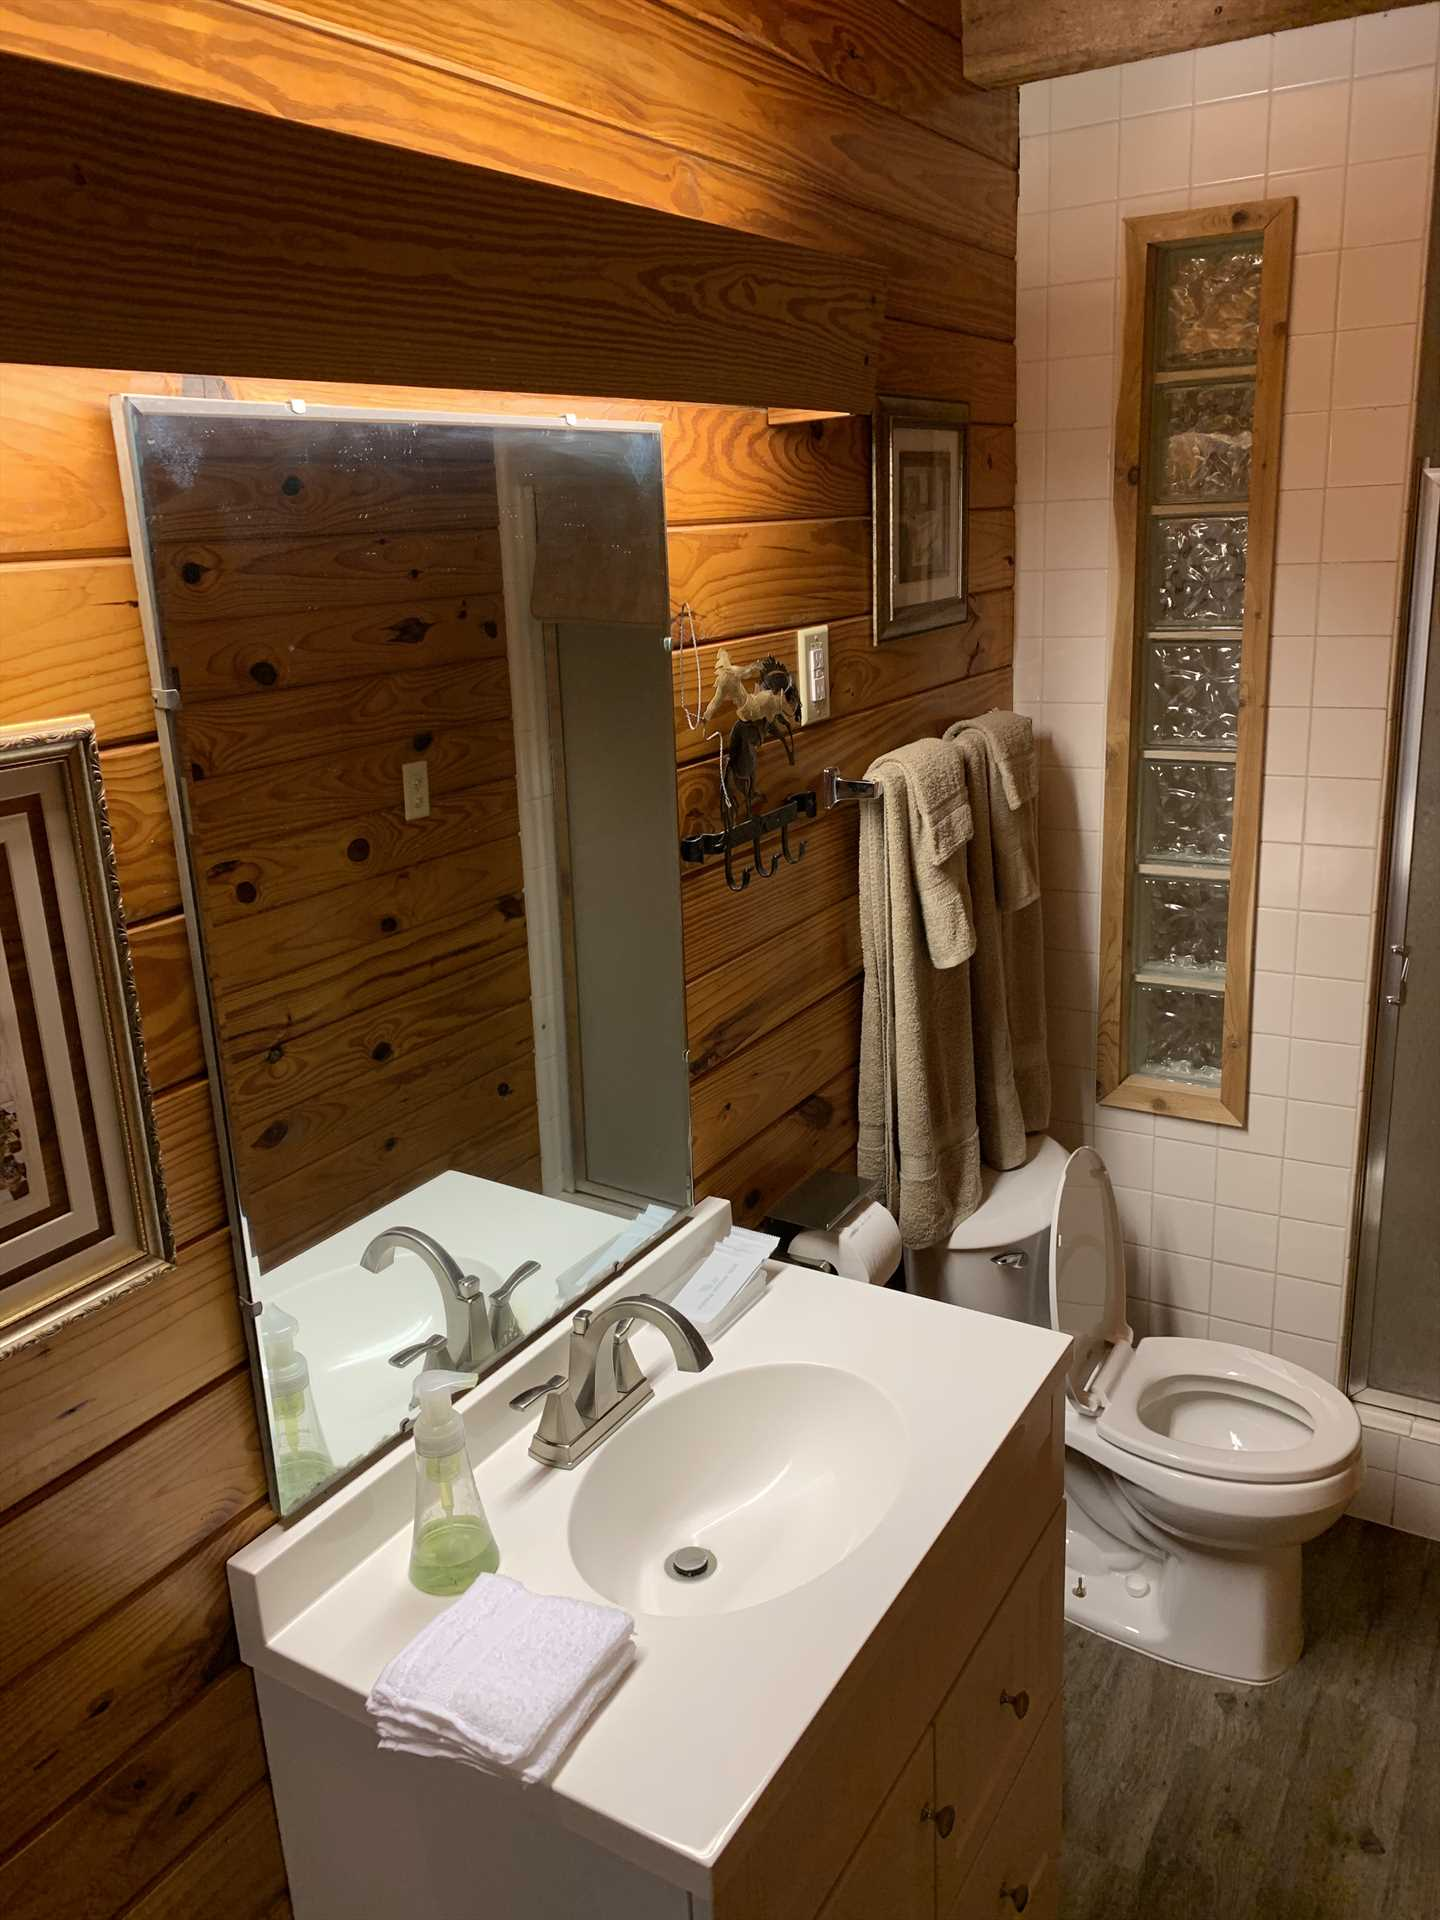 Rustic woodwork and clean and modern amenities make even the bathroom a memorable space! All bath linens are included with your rental, too.